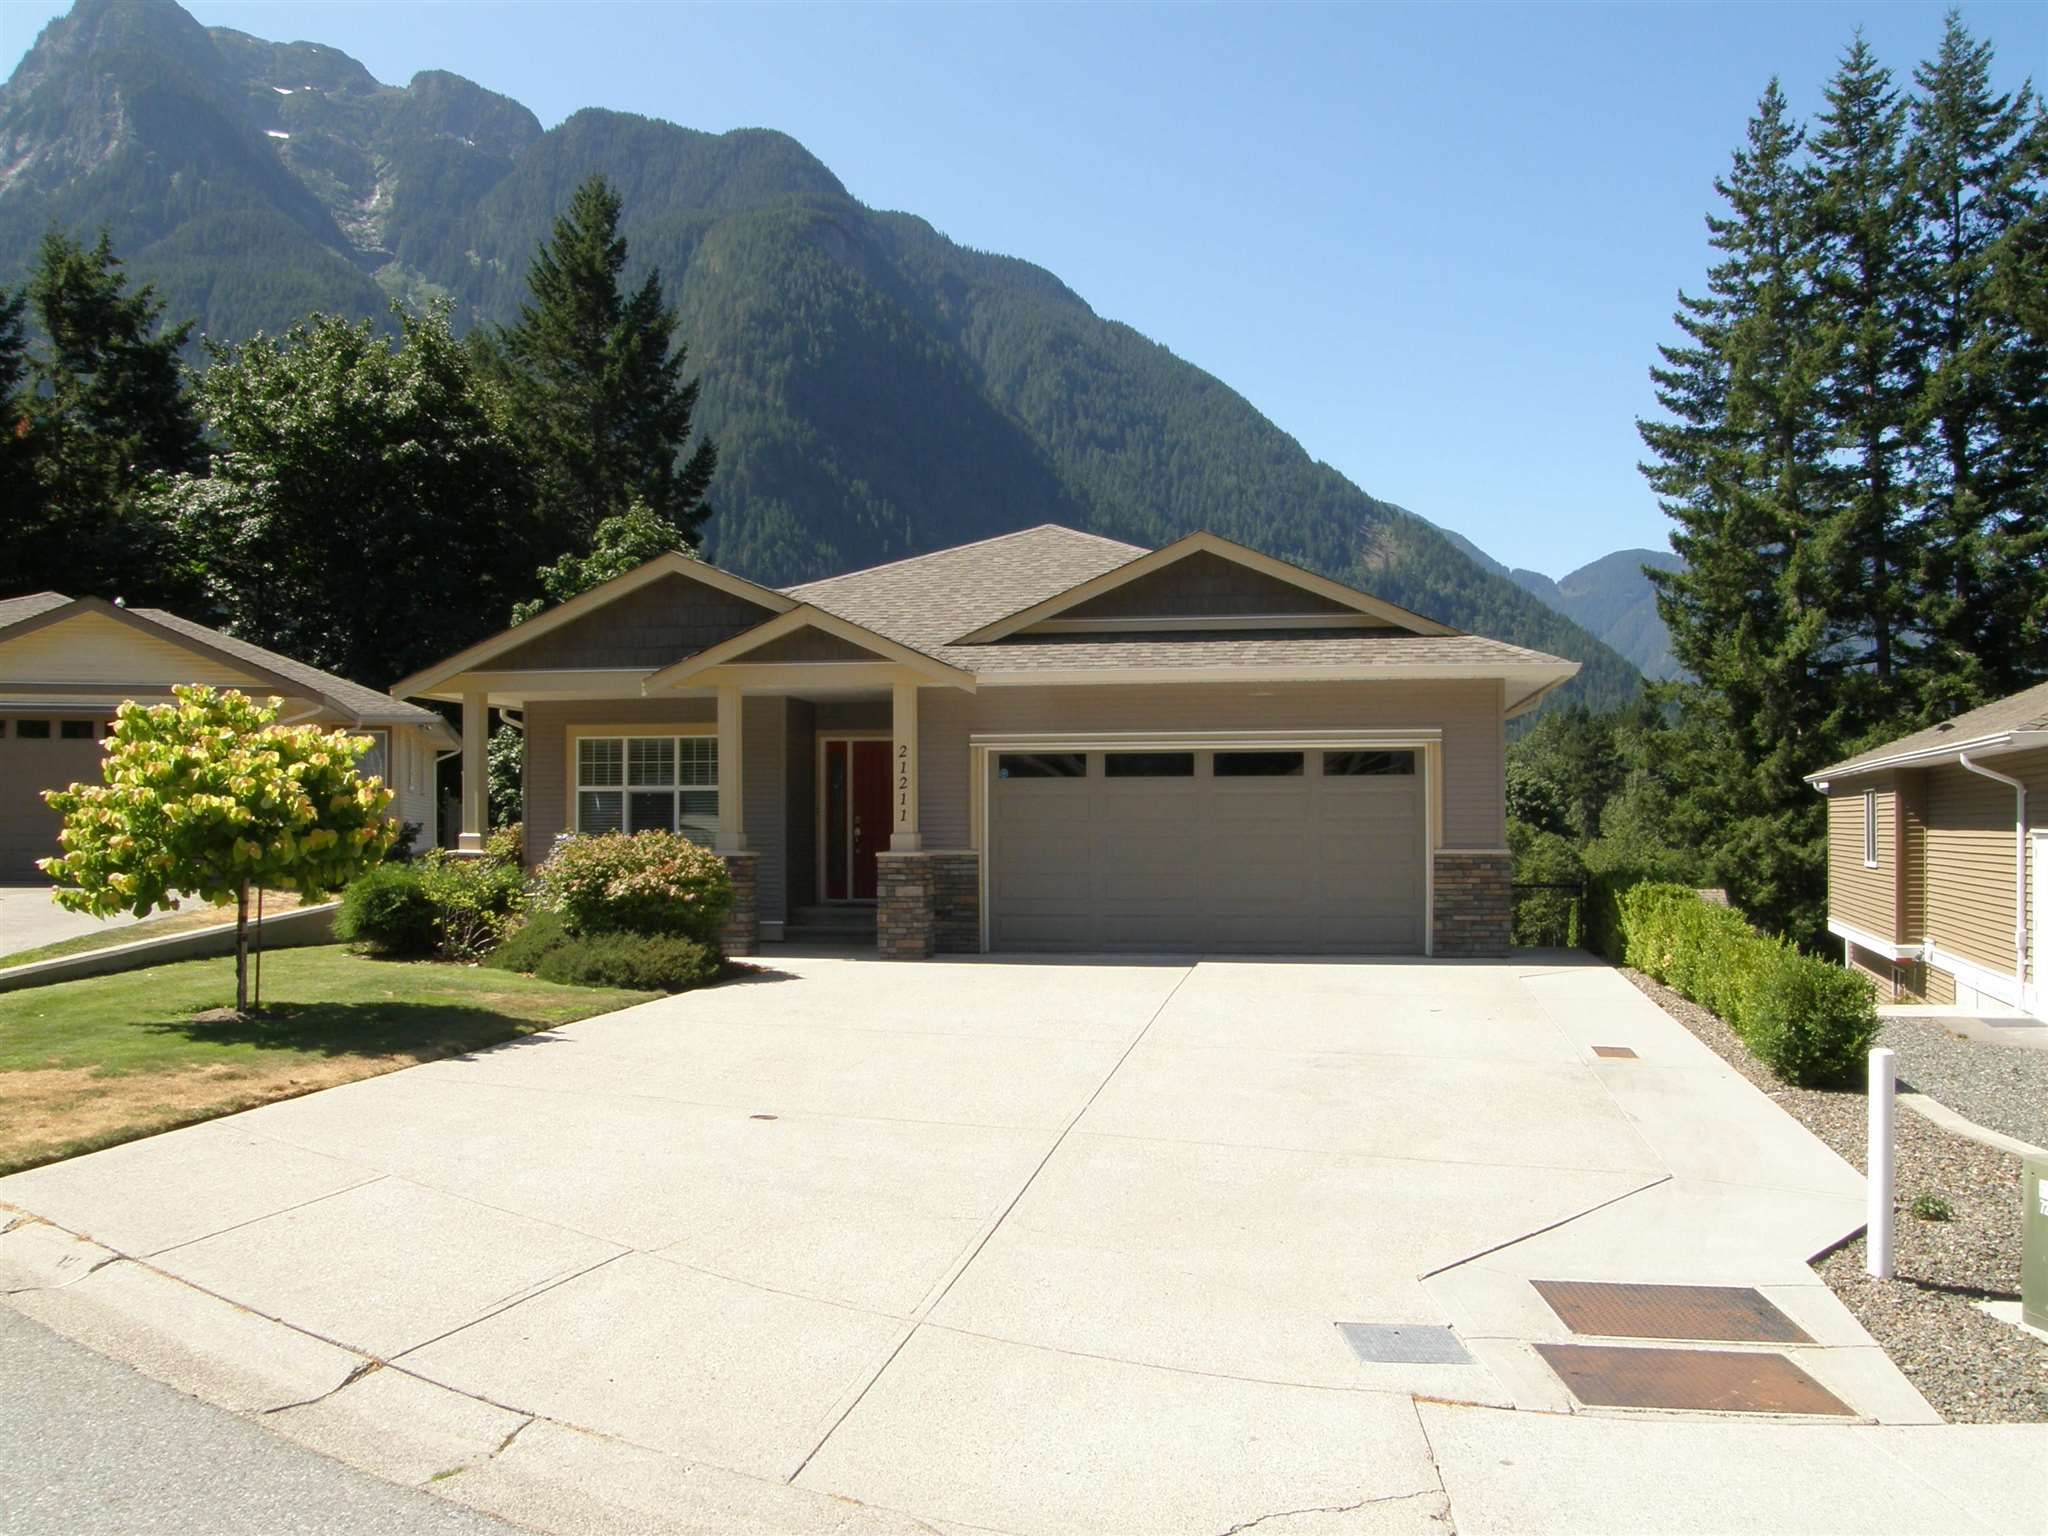 Main Photo: 21211 KETTLE VALLEY Place in Hope: Hope Kawkawa Lake House for sale : MLS®# R2604665